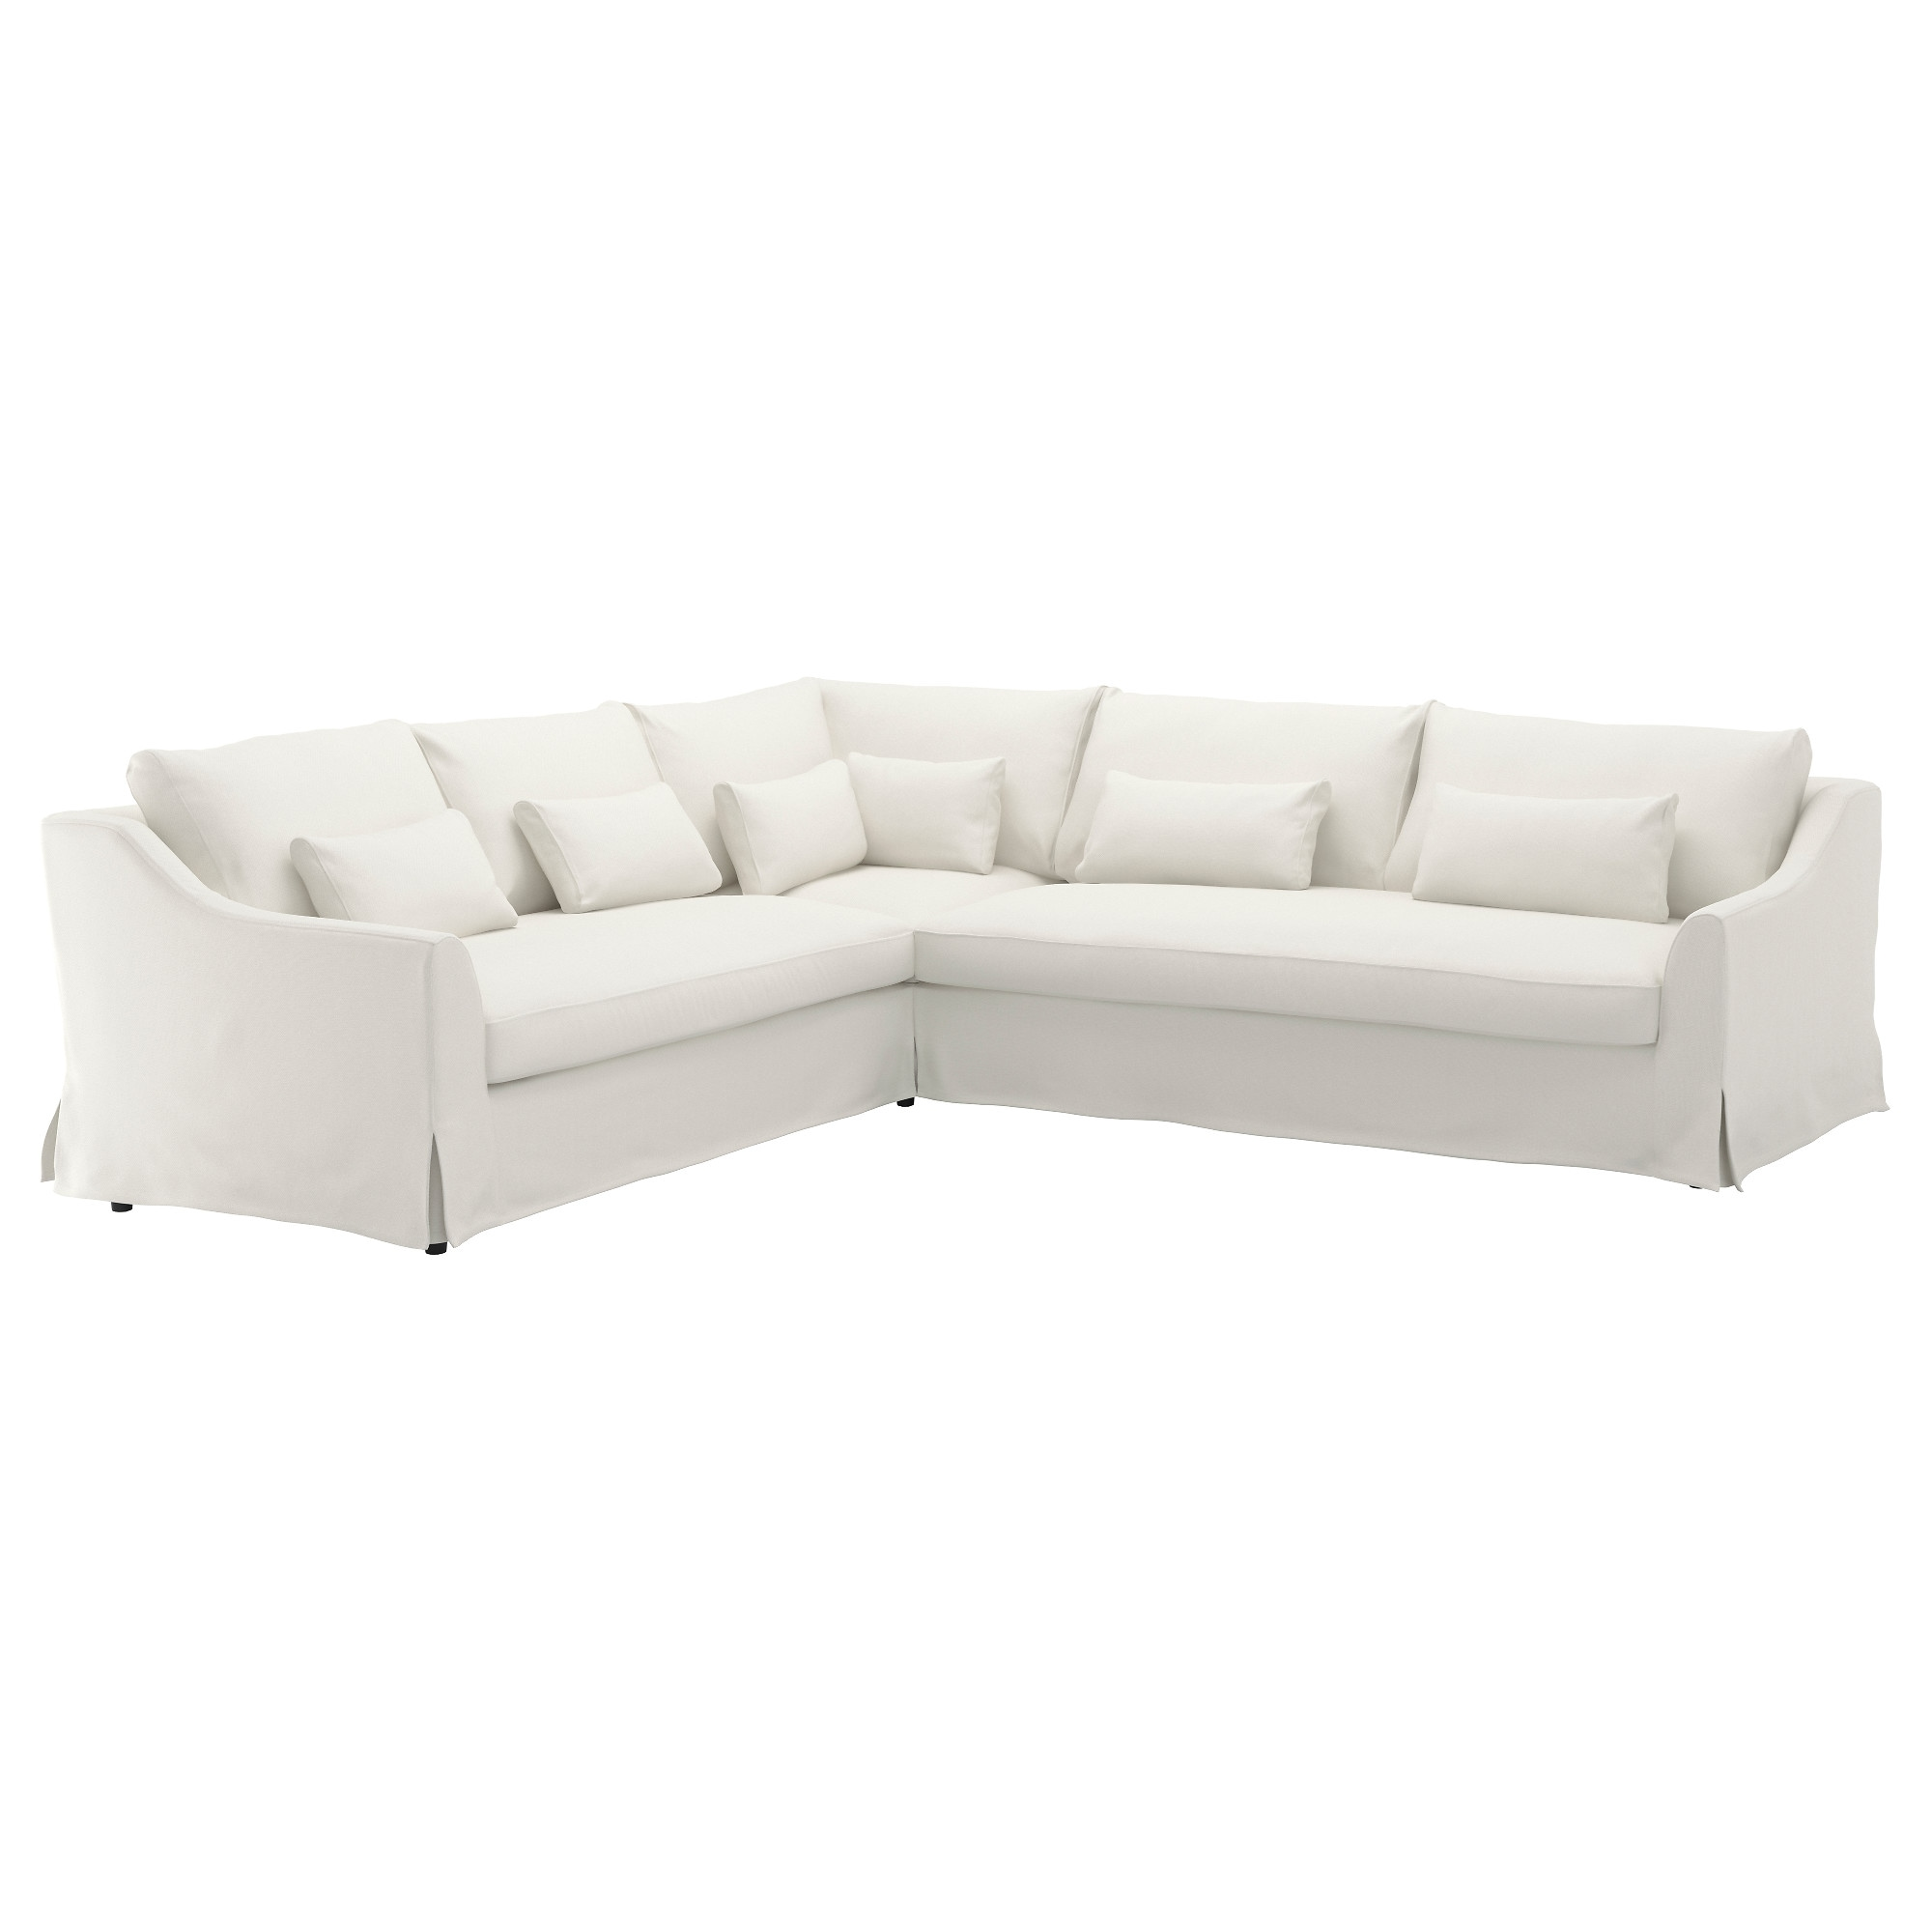 Charming FÄRLÖV Sectional,5 Seat/sofa Right, Flodafors White Height Including Back  Cushions: Part 5